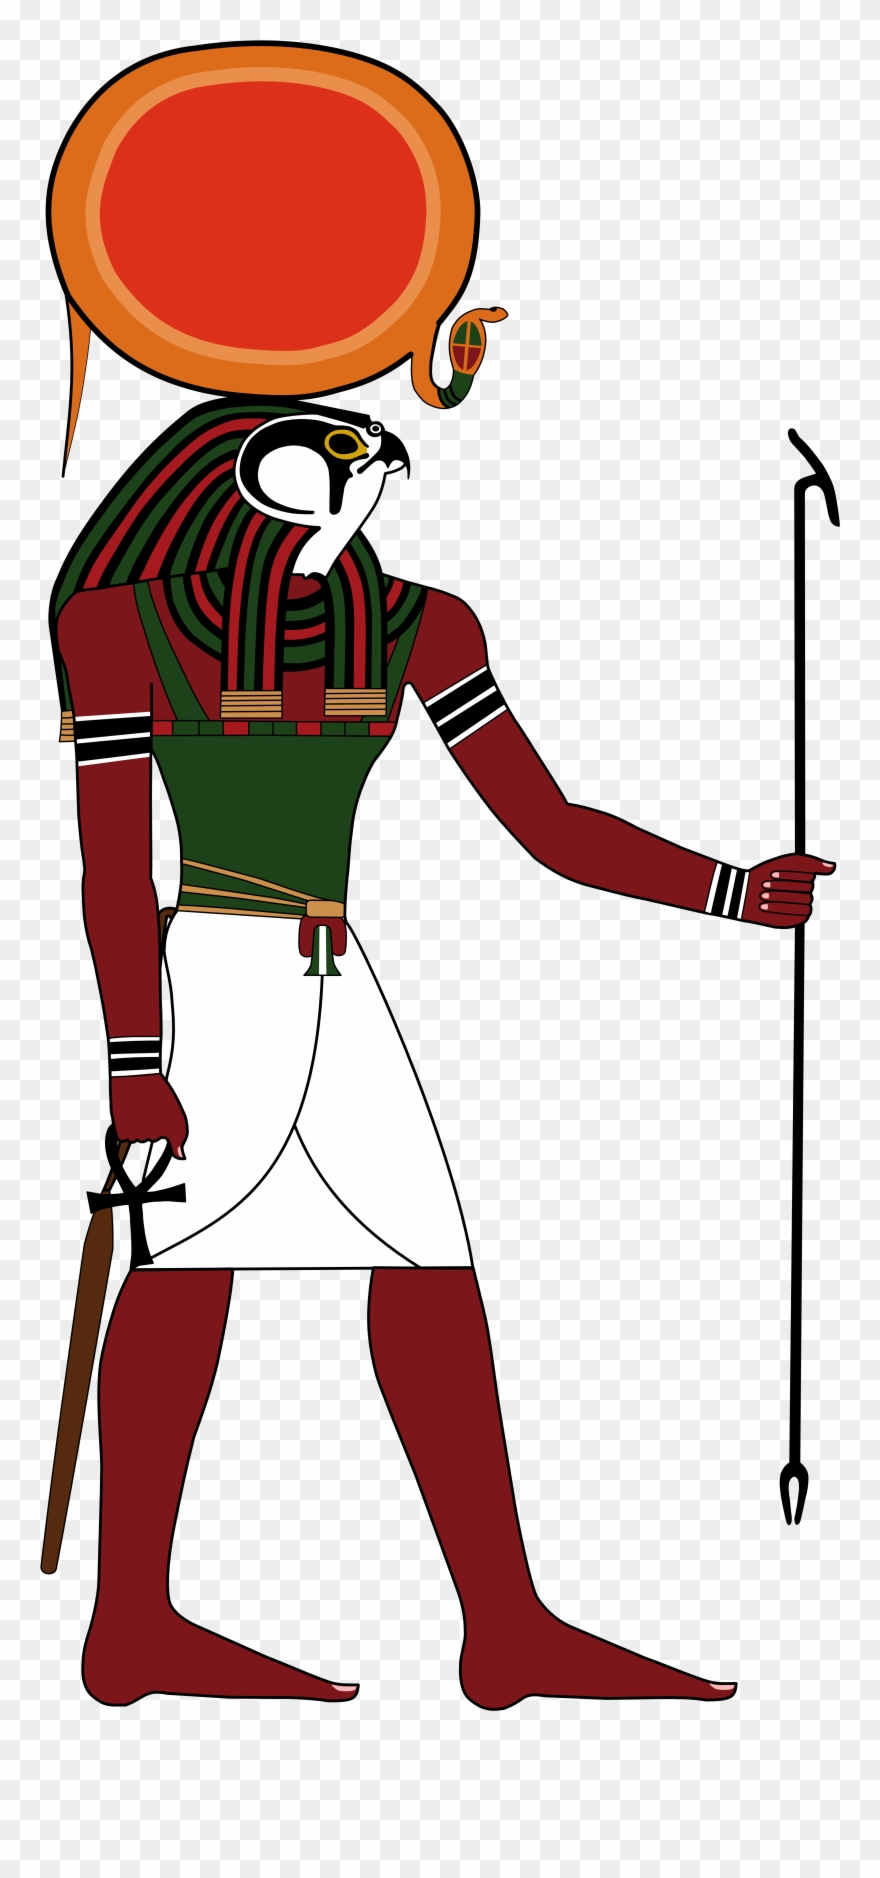 R a clipart image freeuse Egyptian Clip Art - Ra God - Png Download (#6097) - PinClipart image freeuse